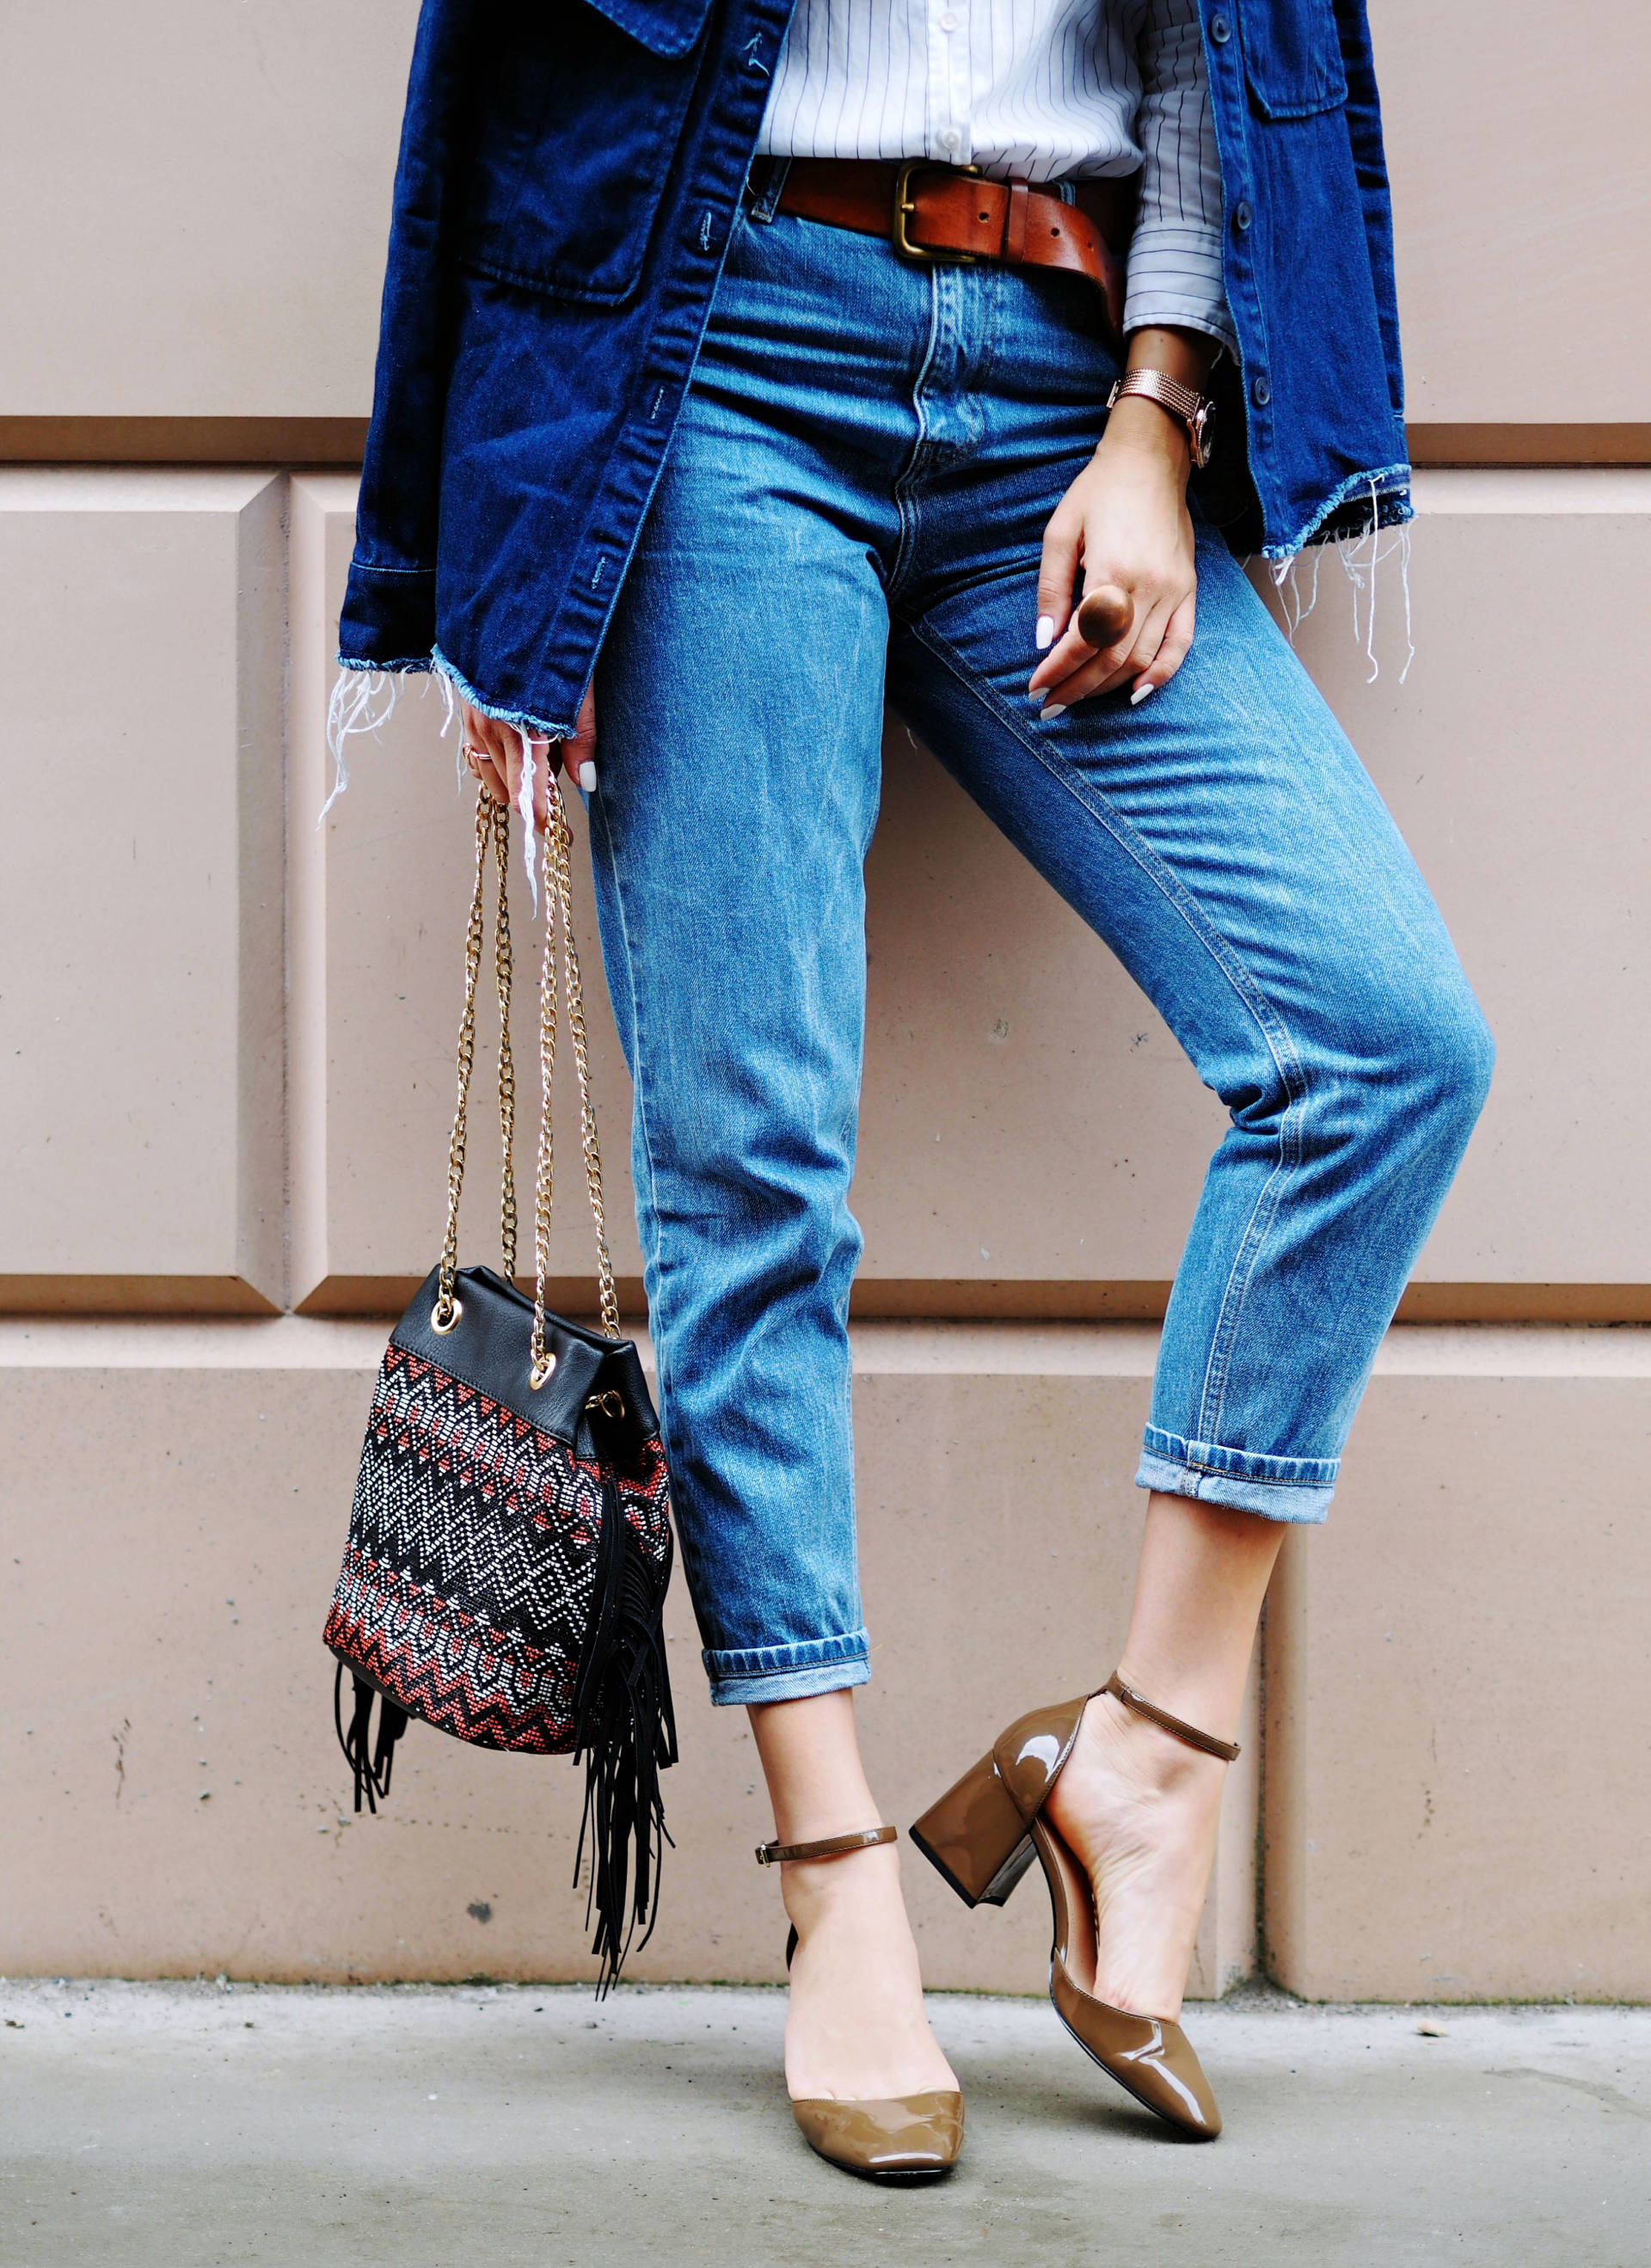 LAFOTKA - DOUBLE DENIM MOM JEANS AND GRANNY SHOES